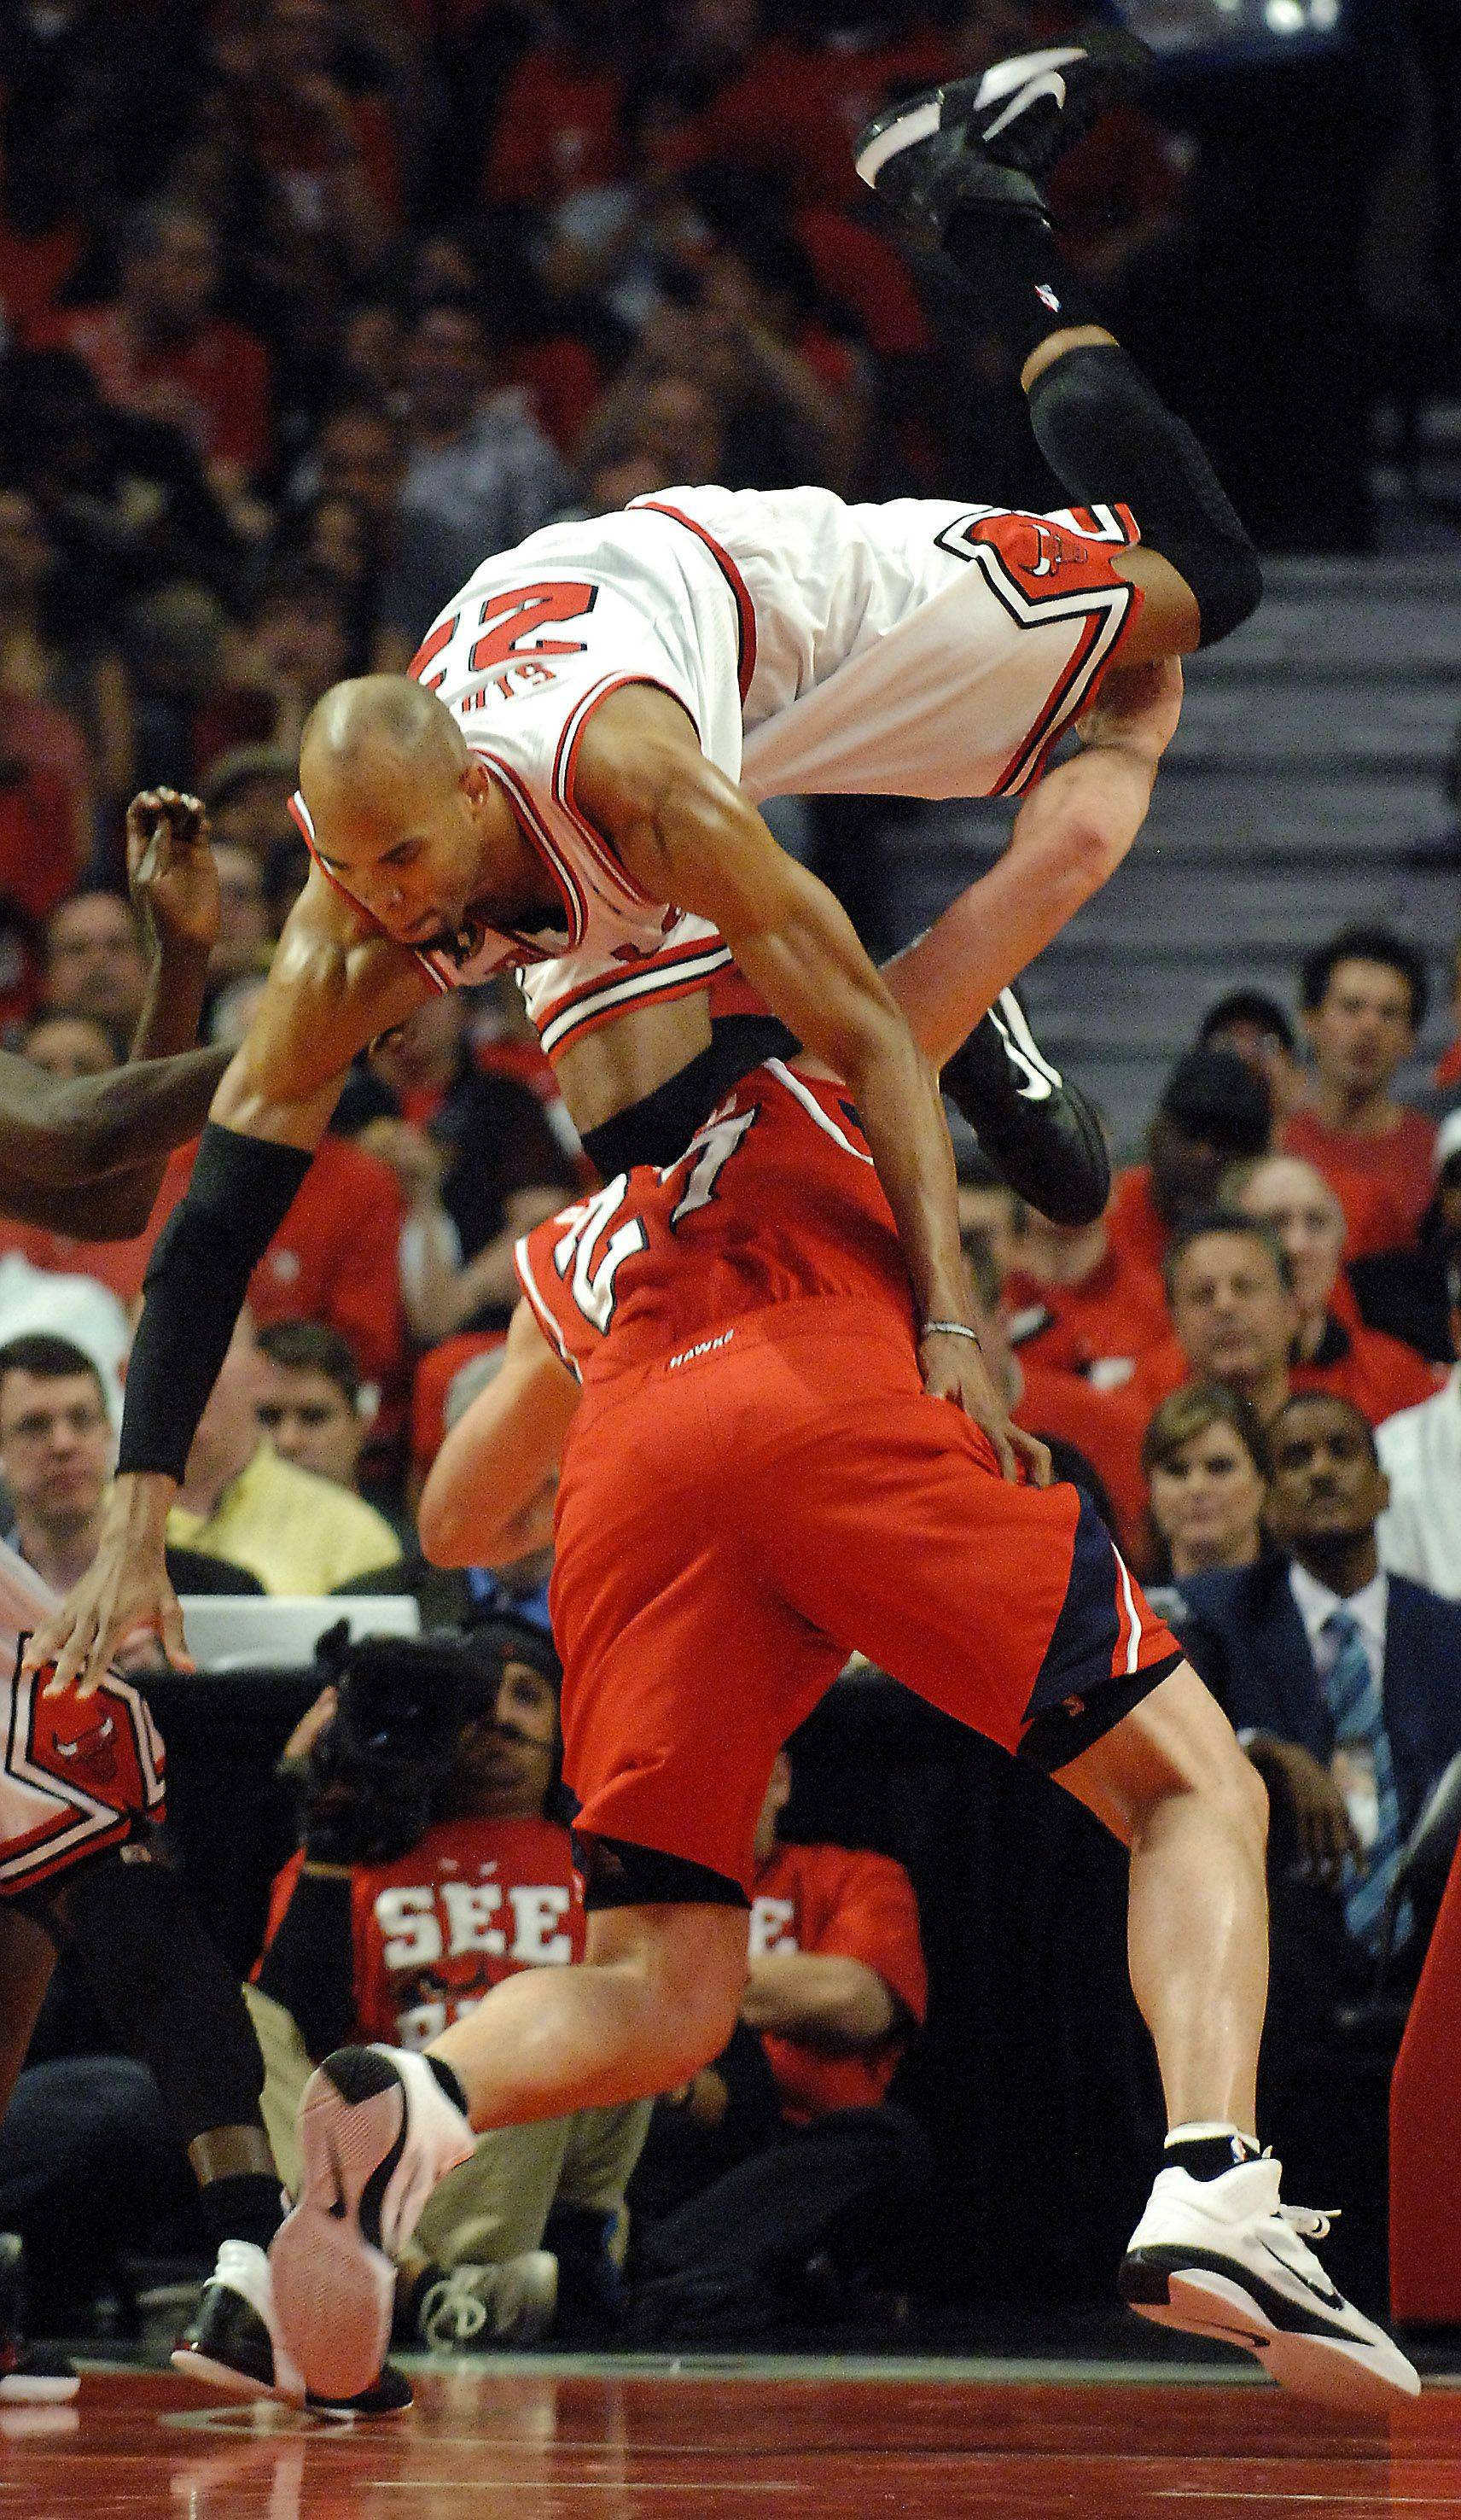 Chicago Bulls forward Taj Gibson flips over Atlanta Hawks center Zaza Pachulia and is called for a foul Tuesday.